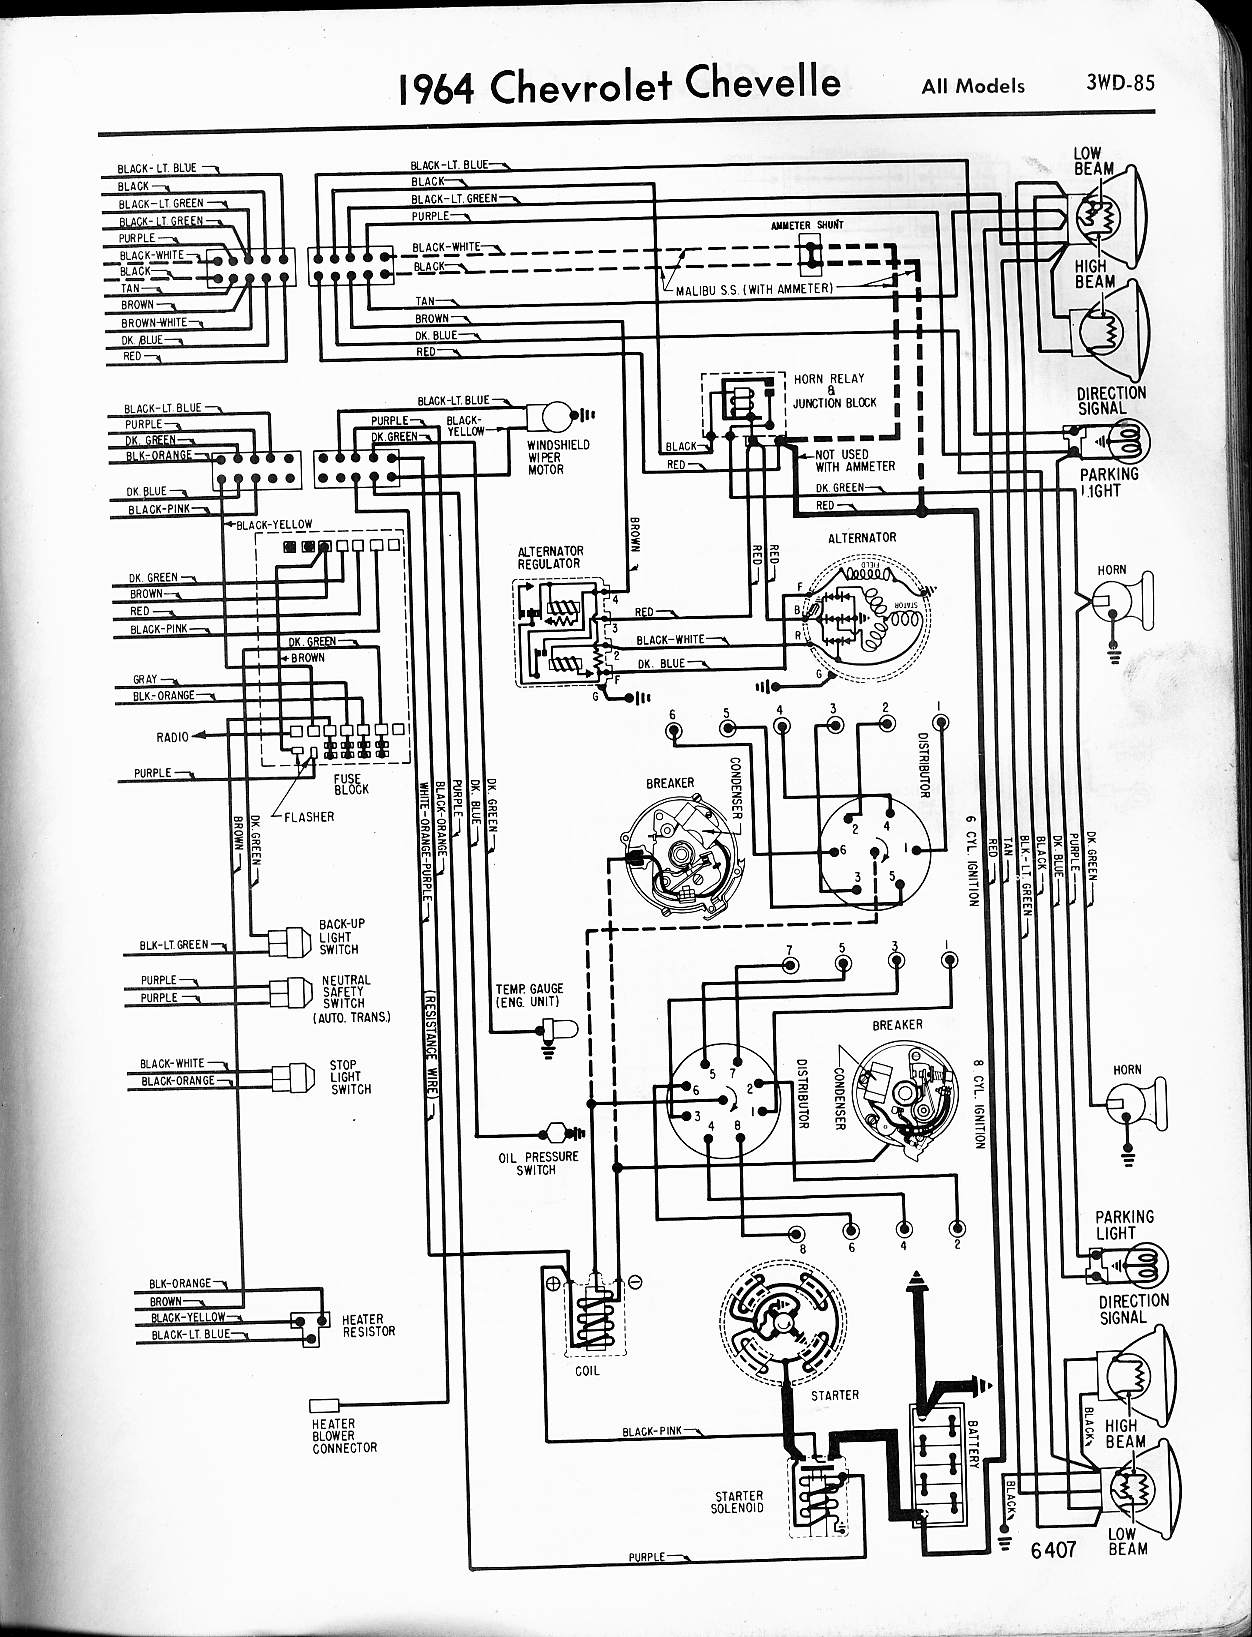 MWireChev64_3WD 085 57 65 chevy wiring diagrams 66 impala wiring diagram at virtualis.co